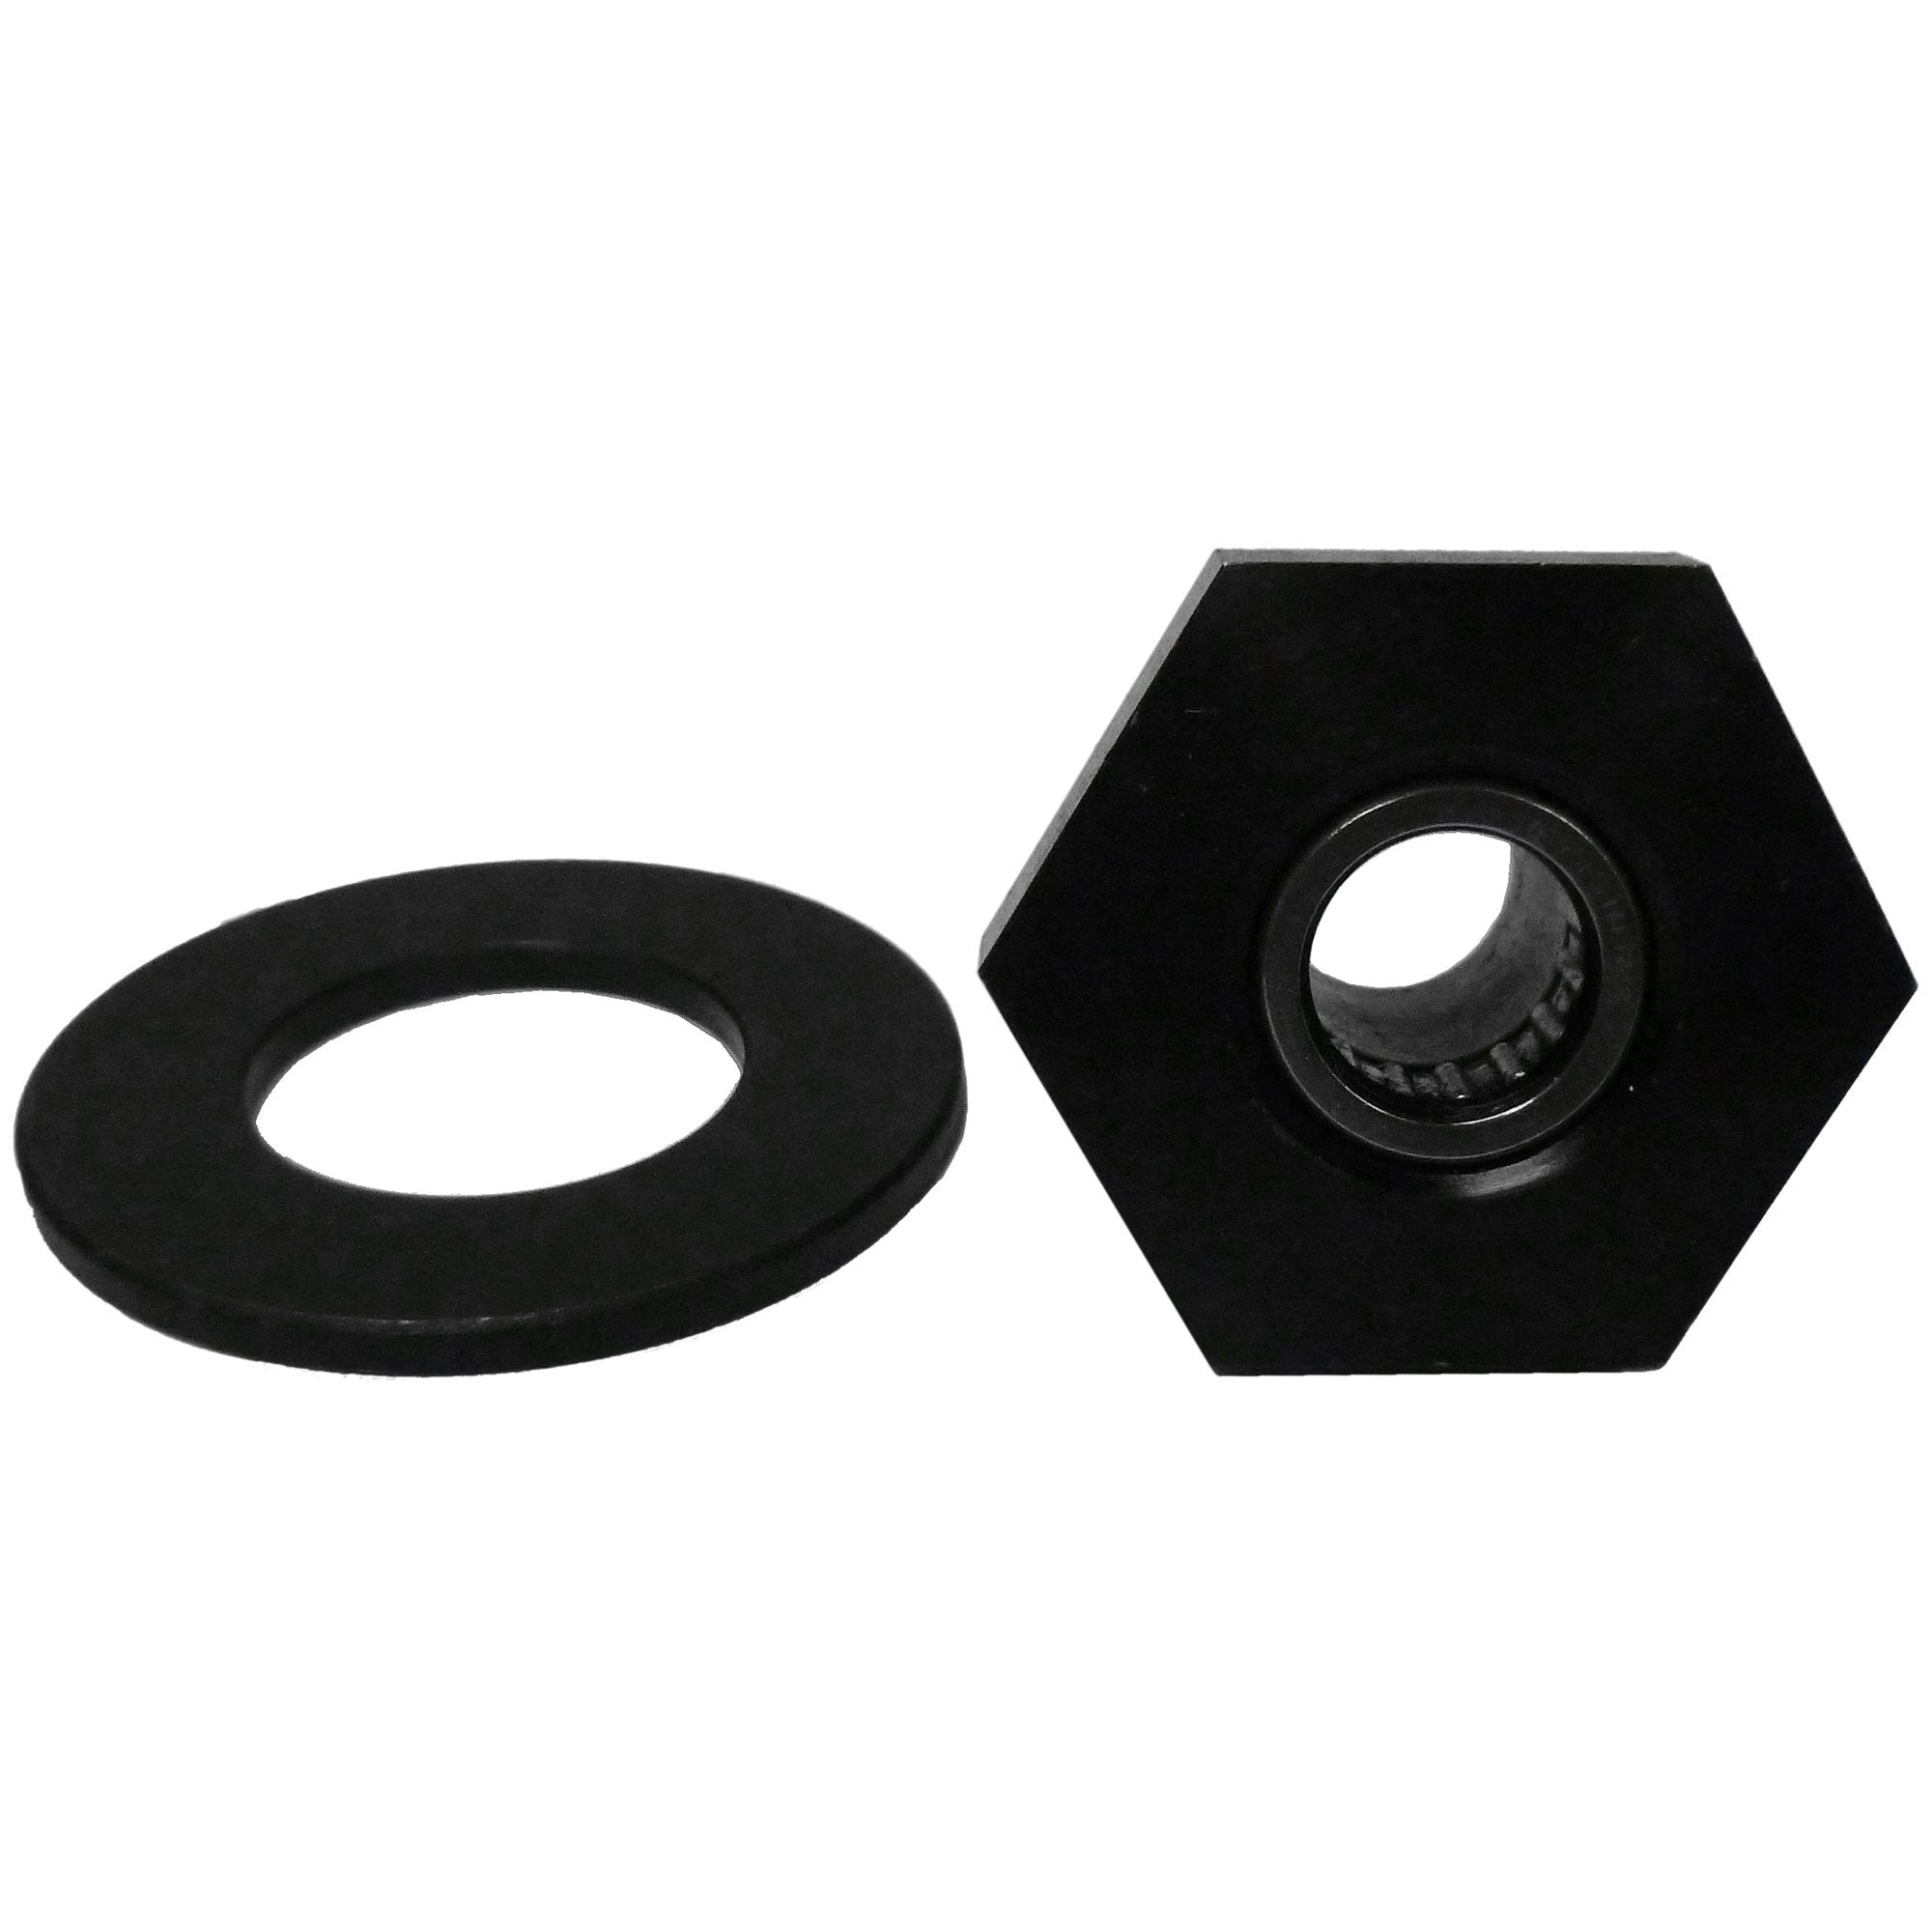 AA Performance Products 42mm Chromoly Gland Nut /& Washer